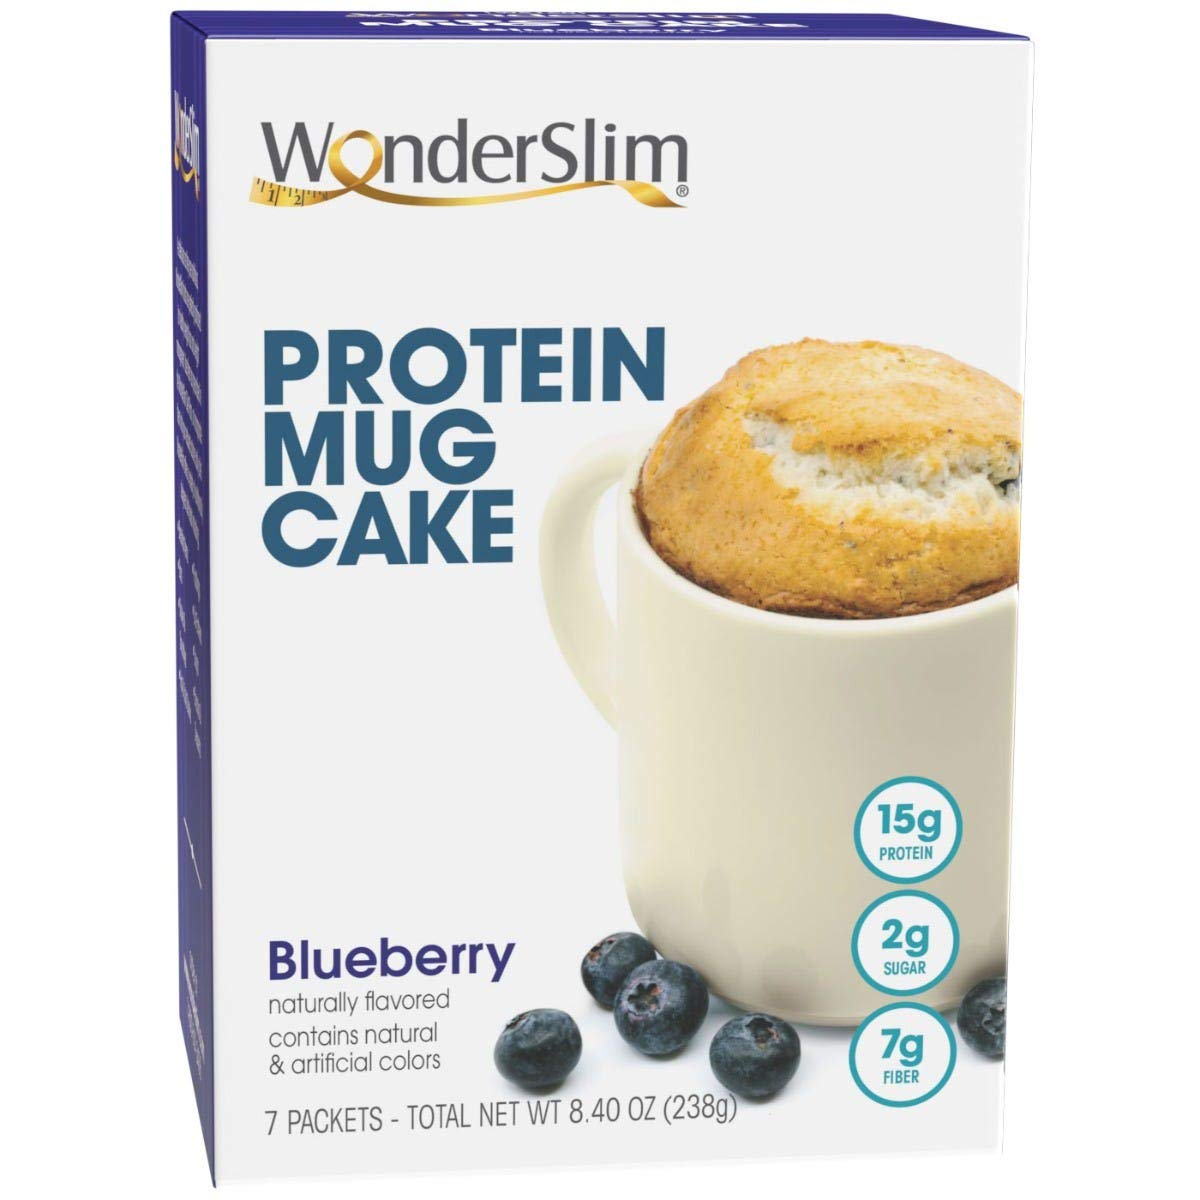 WonderSlim Blueberry Protein Mug Cake, Low Calorie Snack For Weight Loss, 7 Mug Cake Mixes with 15g Protein Ready In 30 Seconds, 7g Fiber, Low Sugar, Only 130 Calories, Gluten Free Treat - 7 Servings